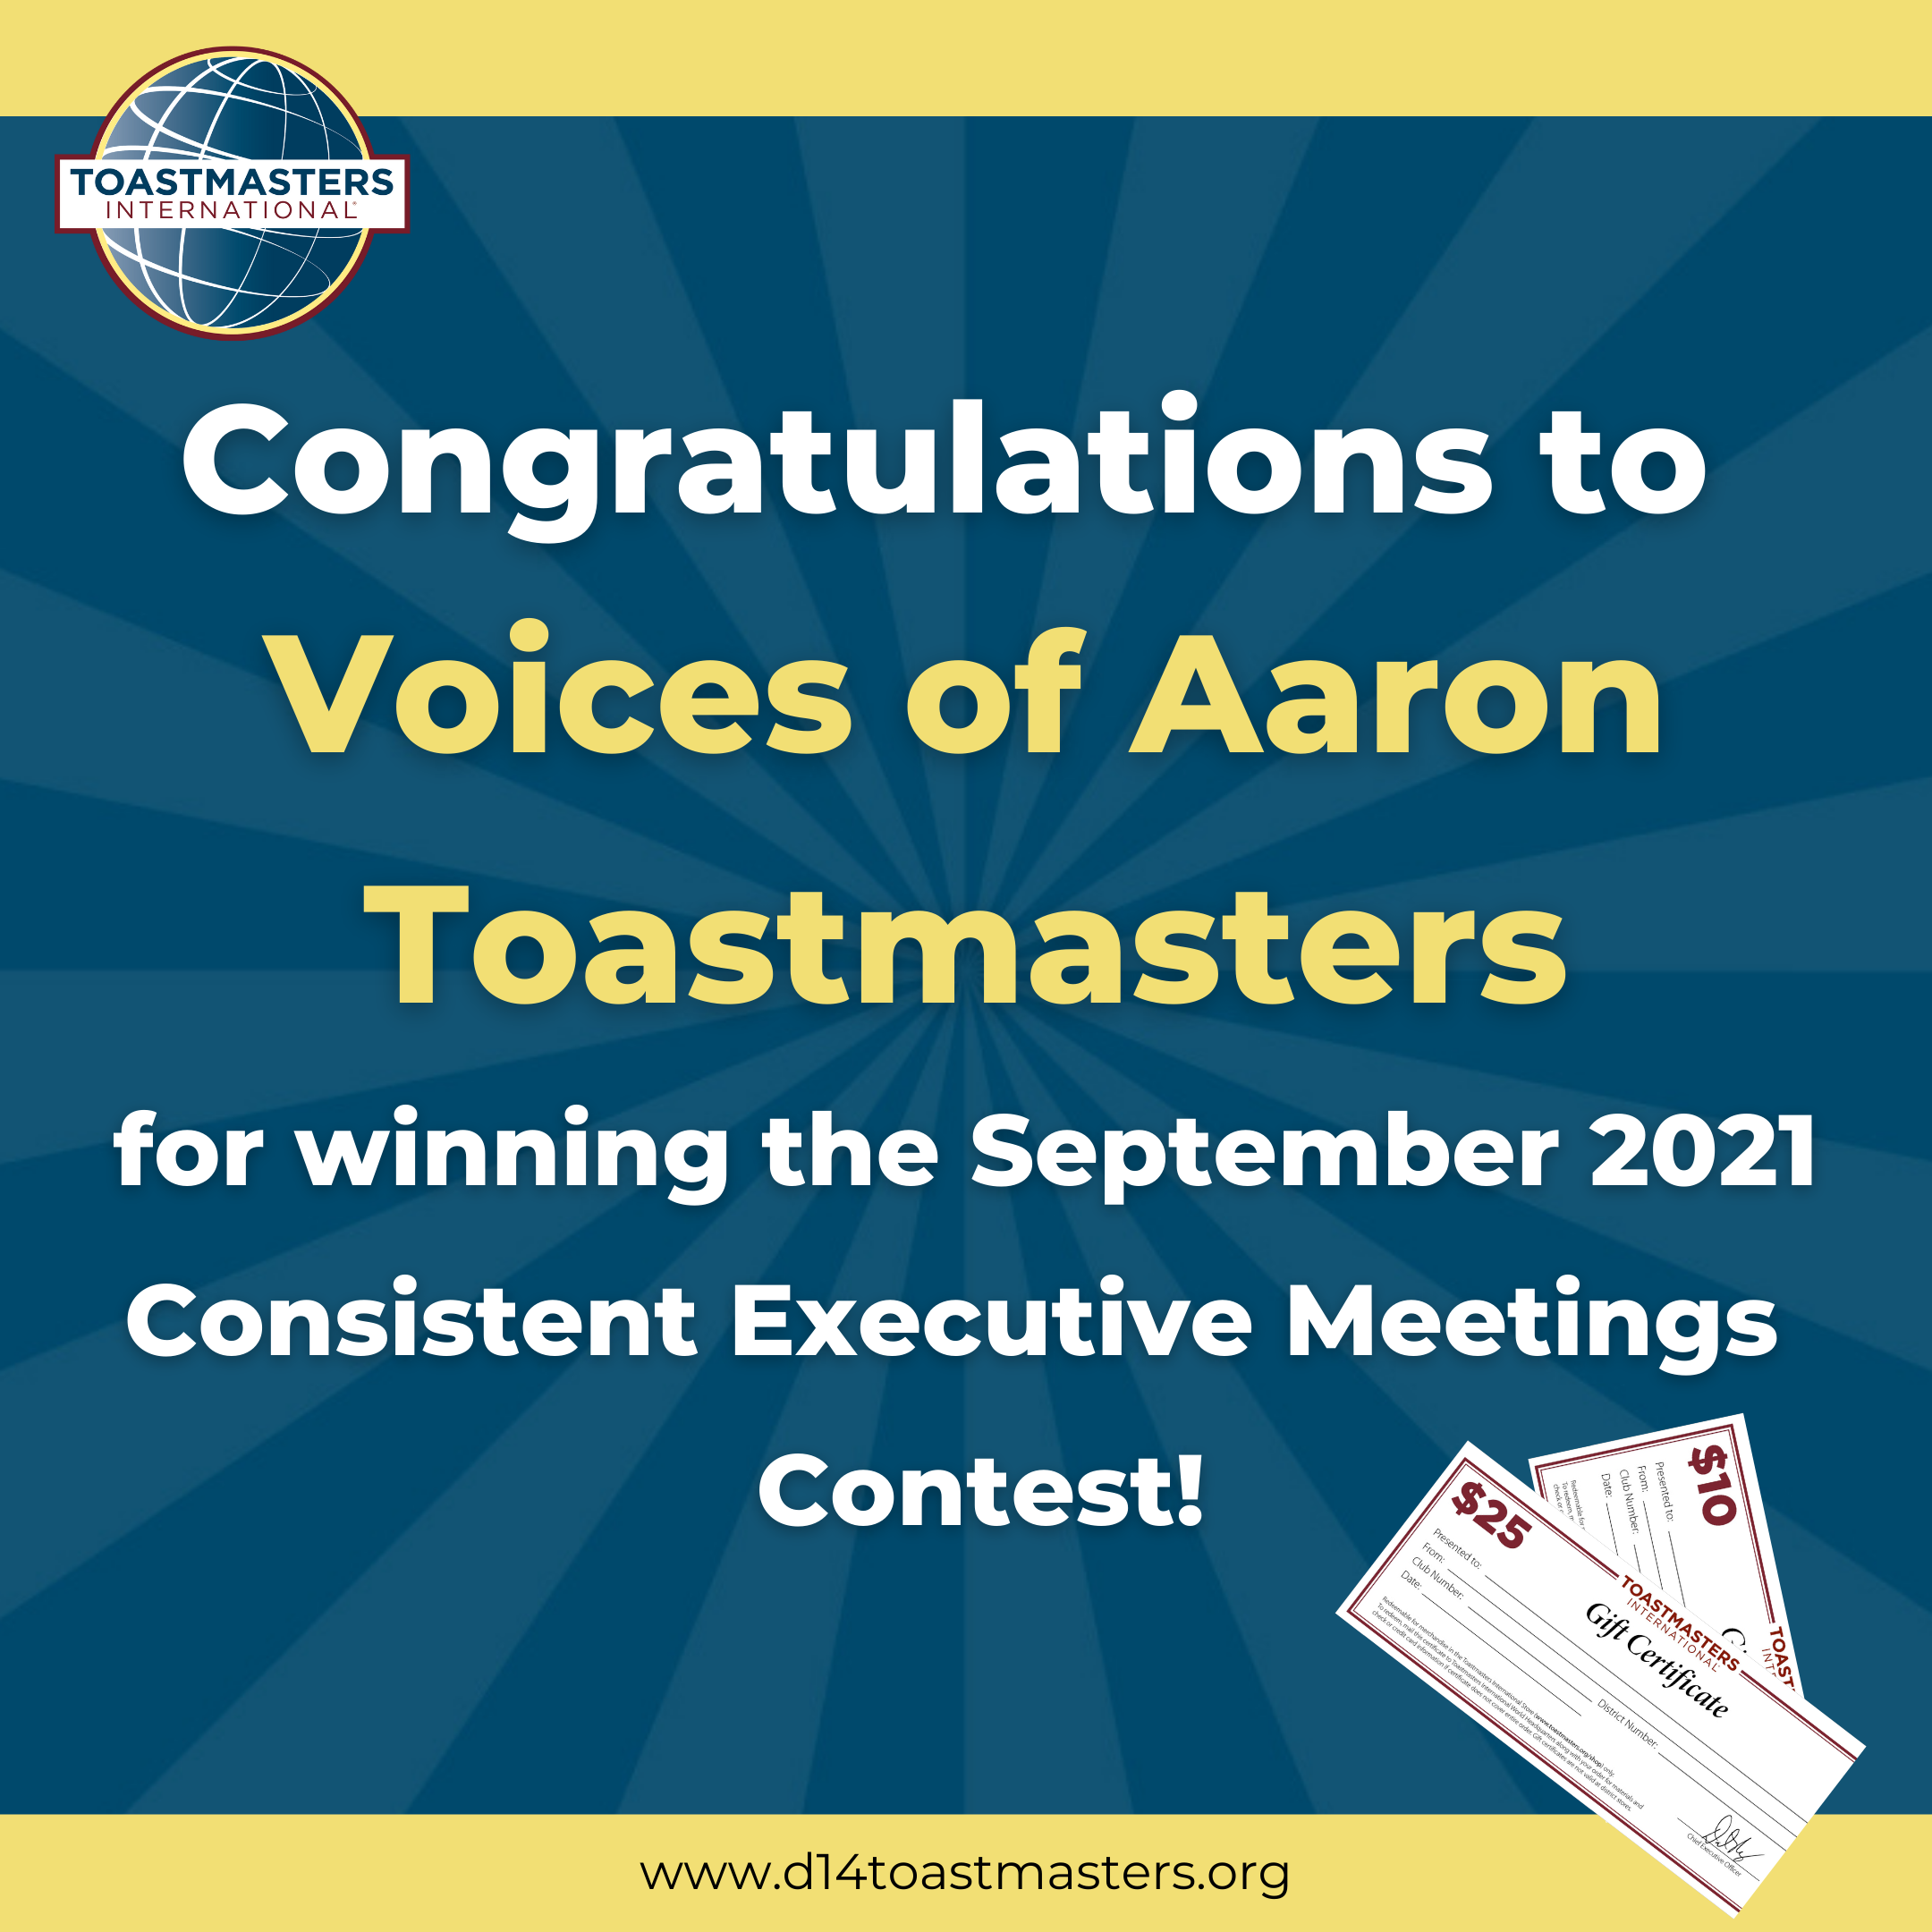 Congratulations to Voices of Aaron for winning the September 2021 Consistent Executive Meetings Contest!